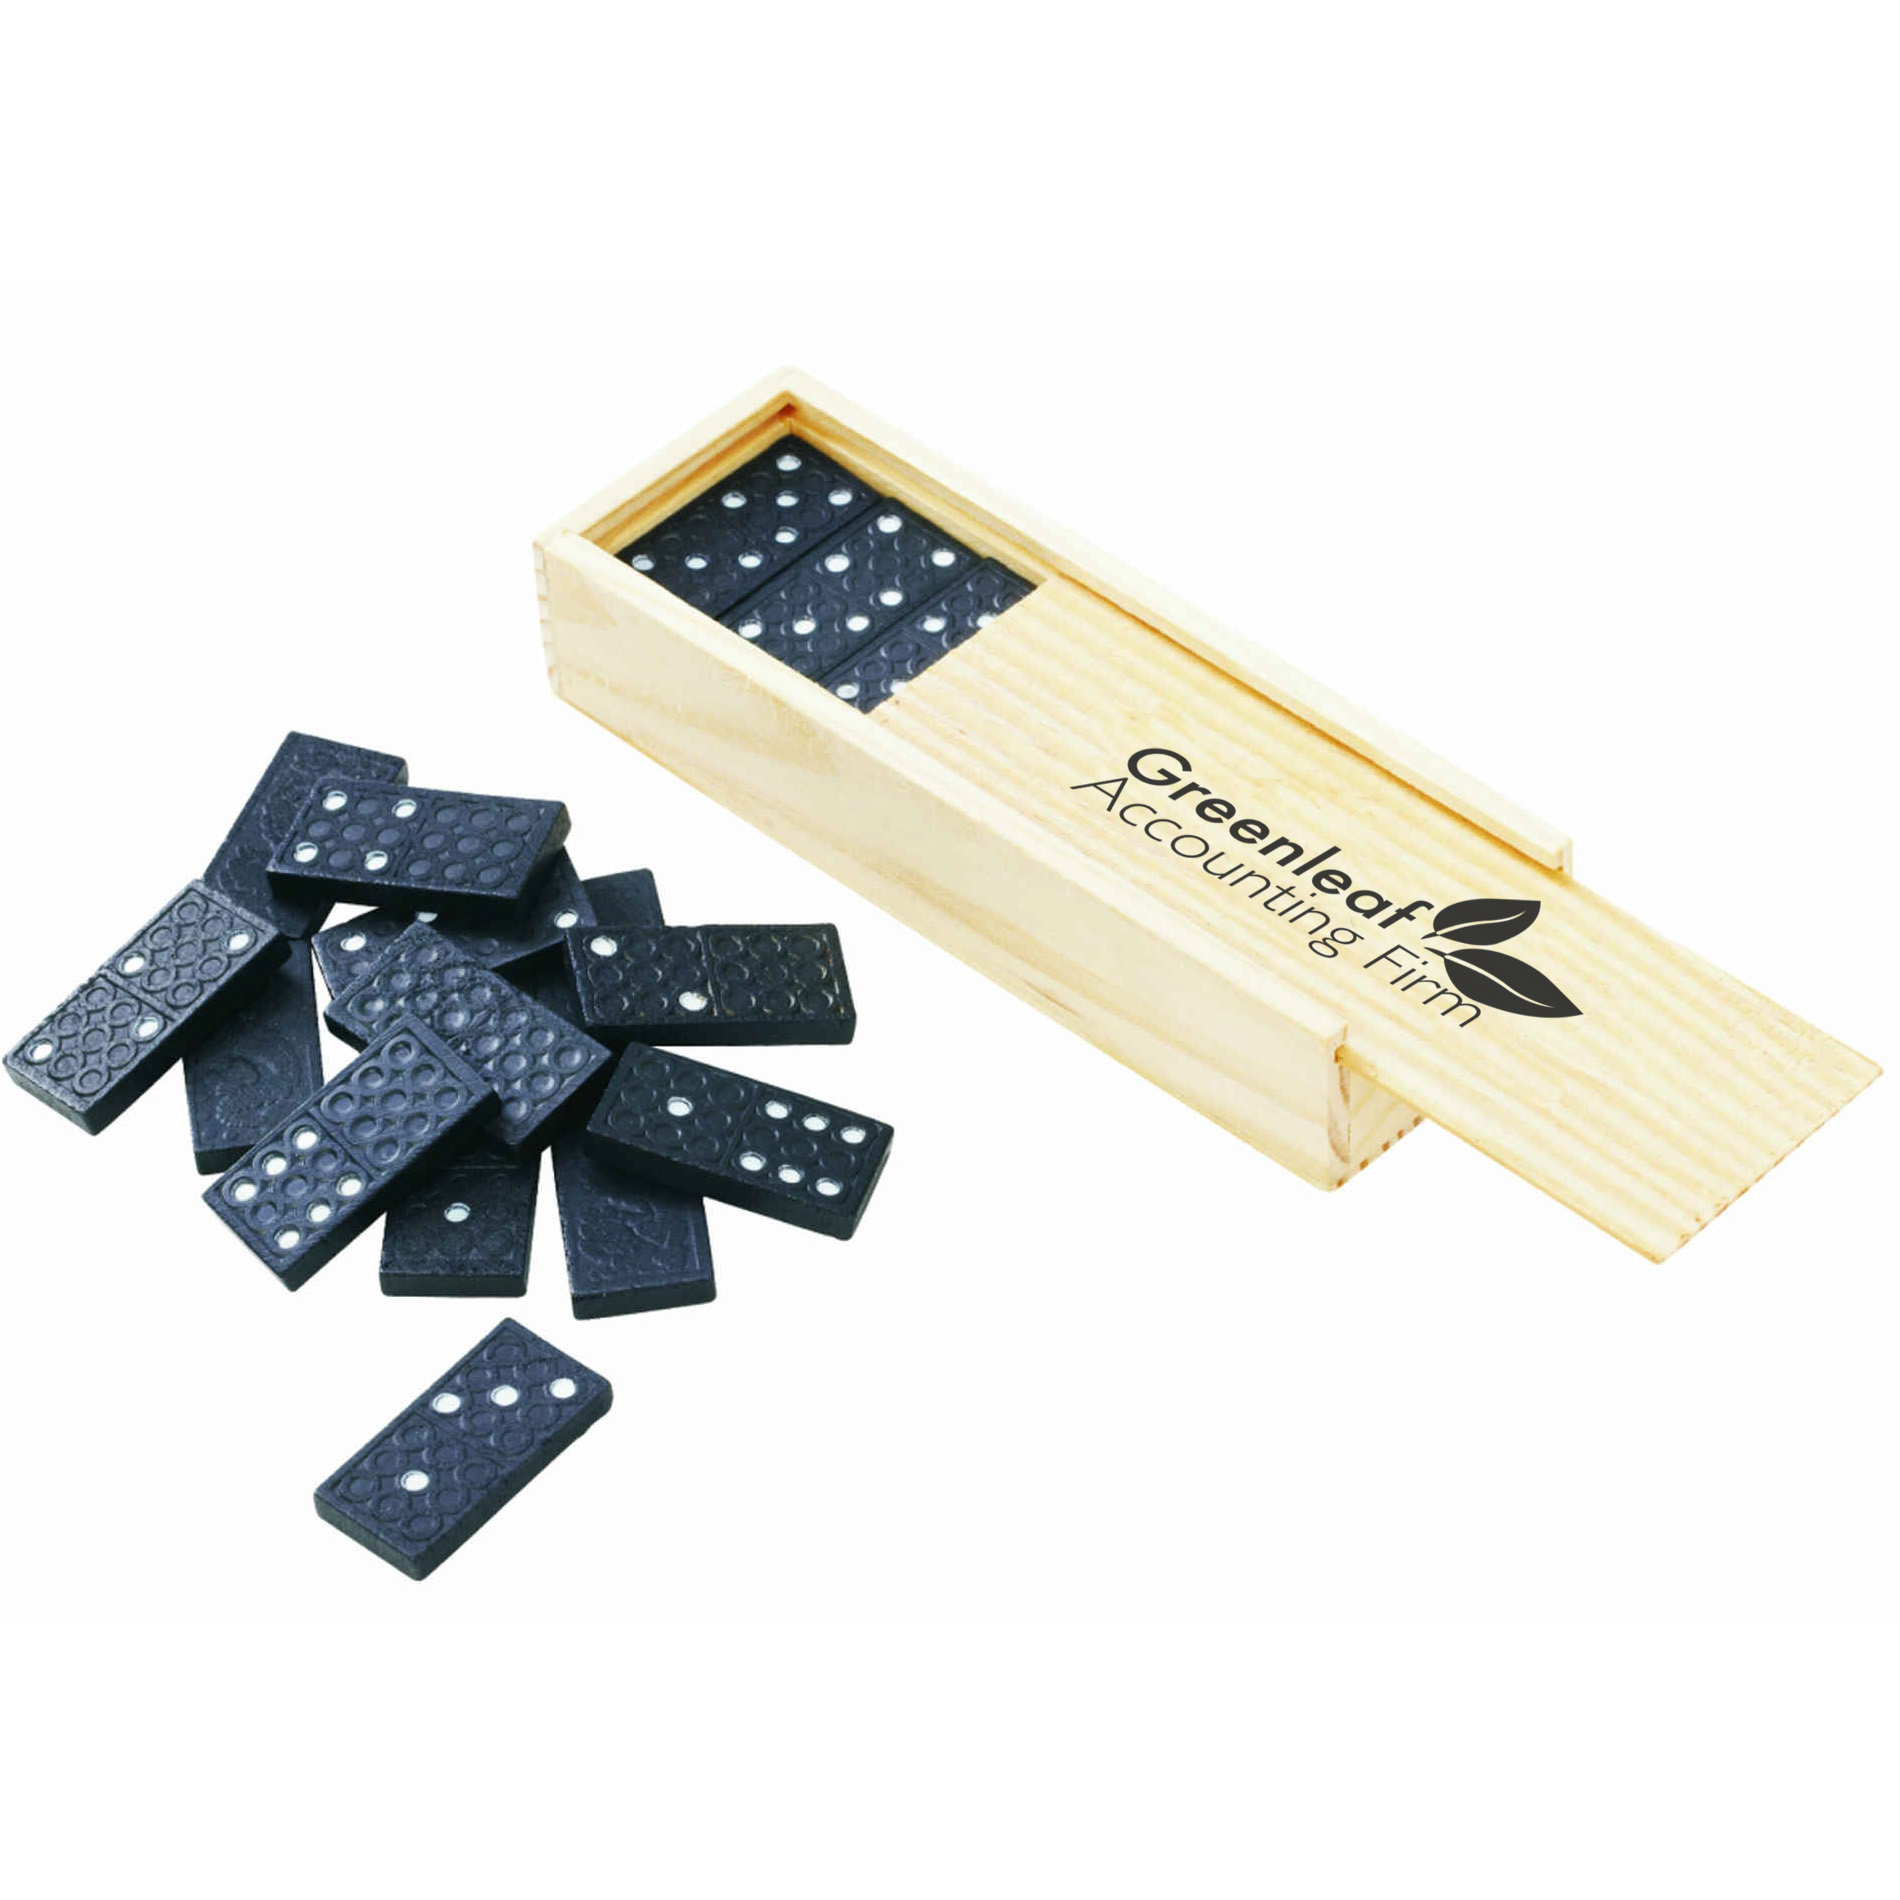 Dominoes in a Wood Box